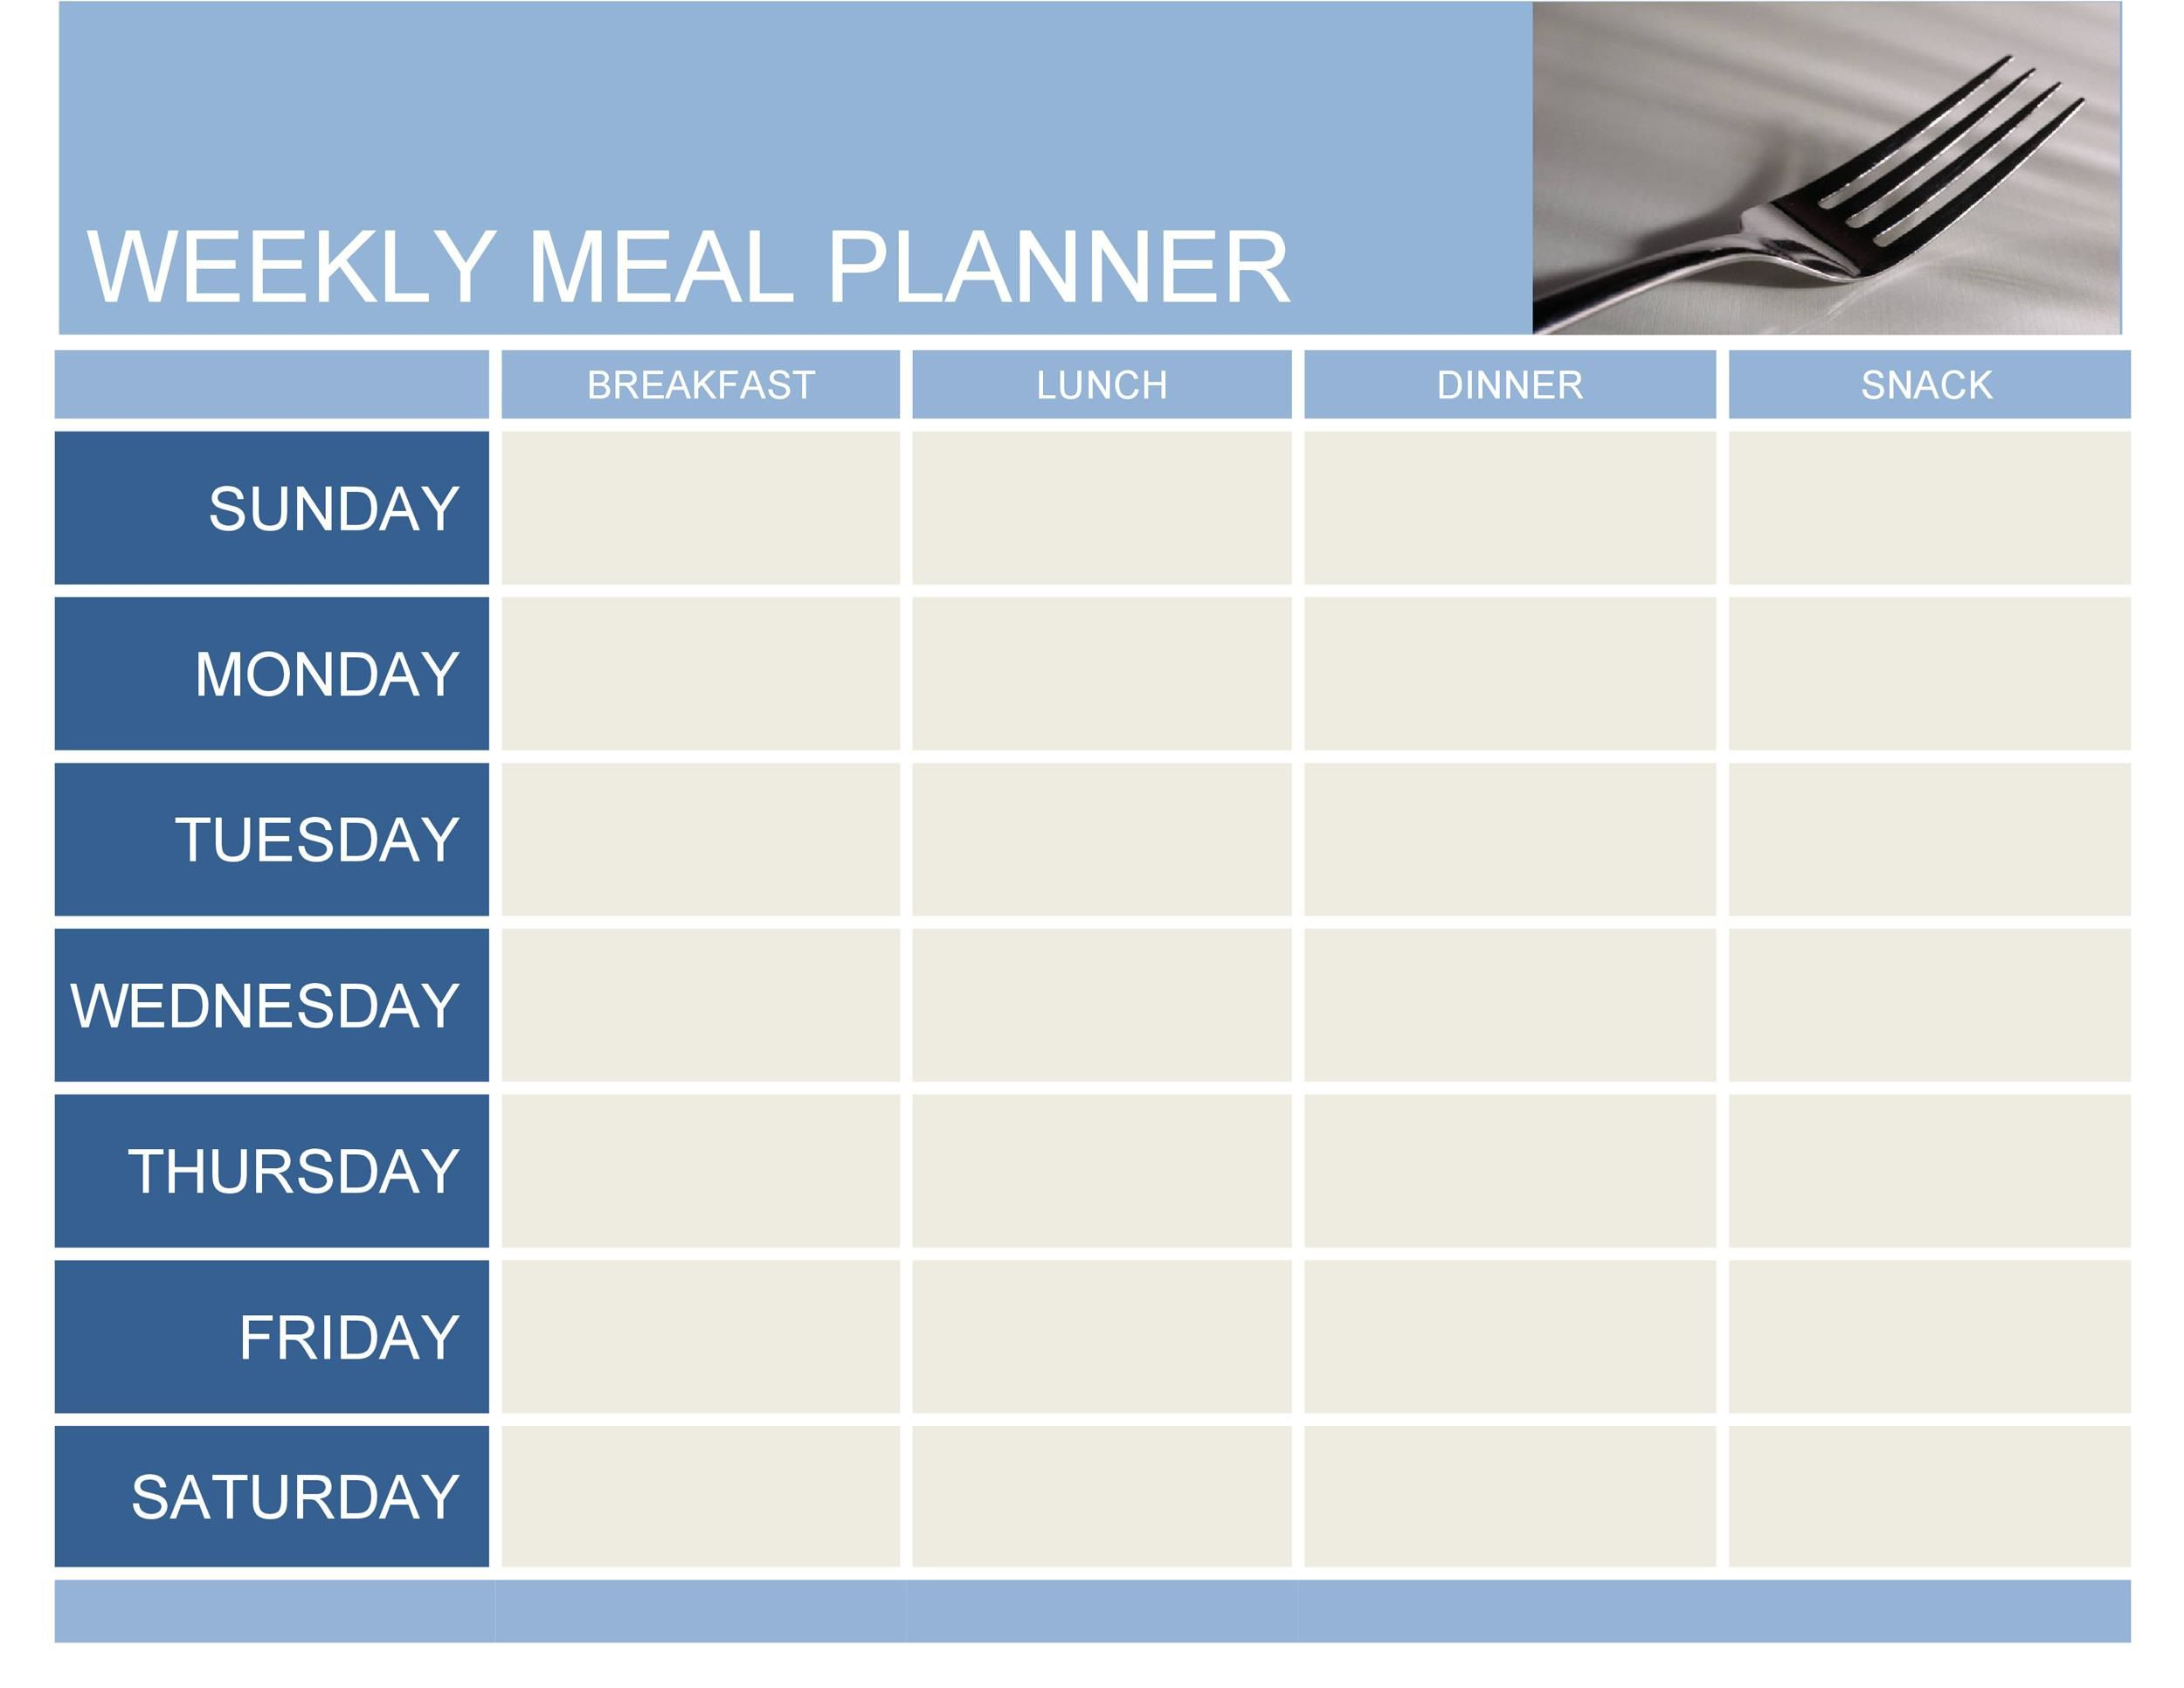 007 Marvelou Excel Weekly Meal Planner Template Image  With Grocery List DownloadableFull